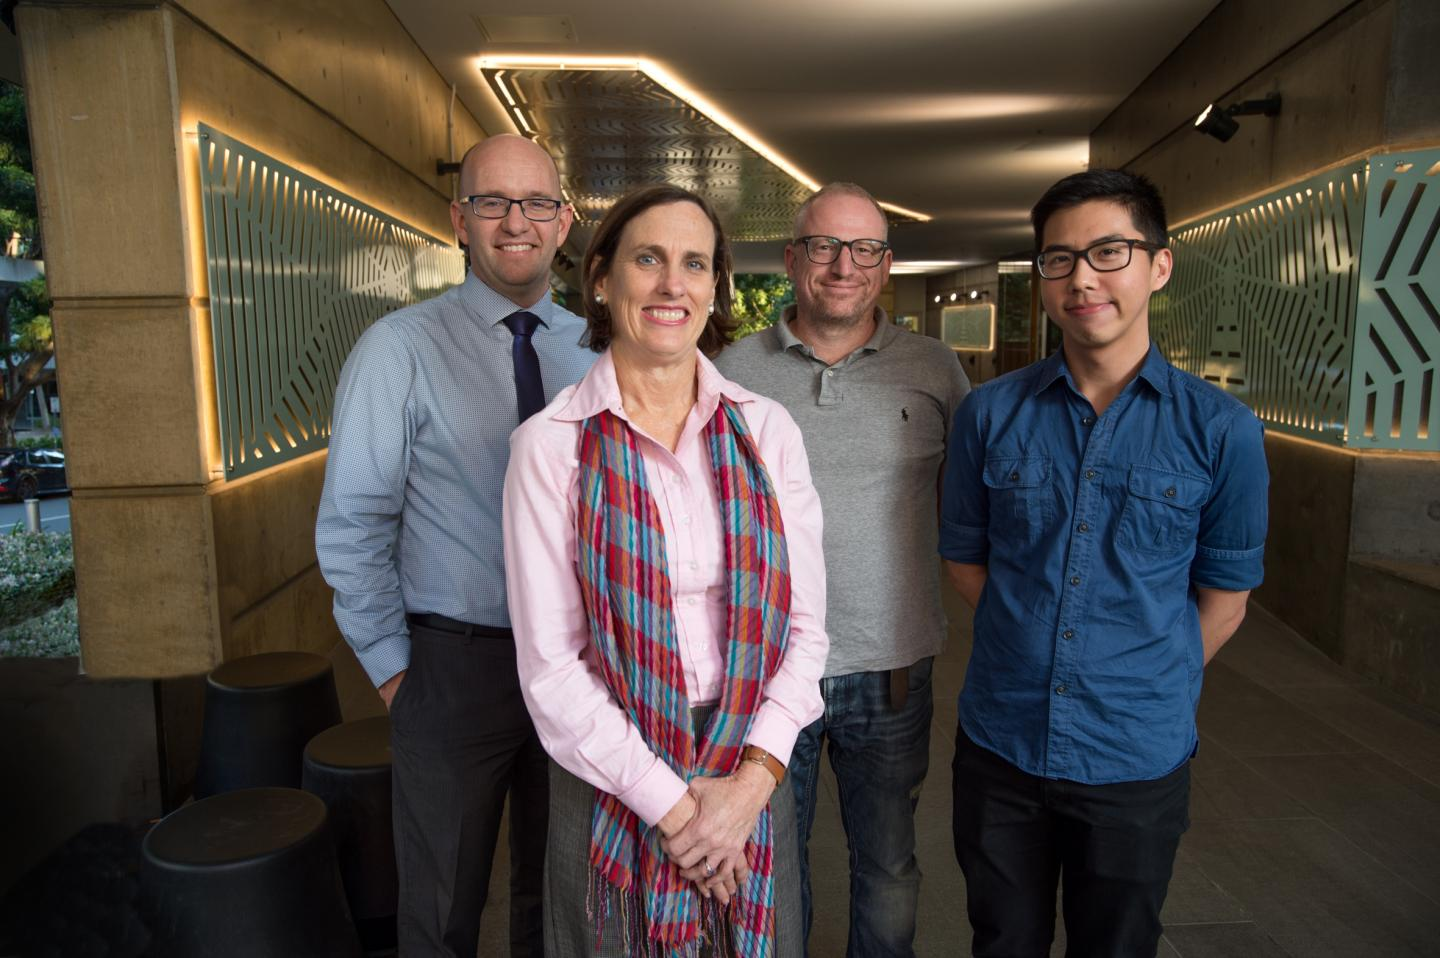 QUT Professors Ben White, Lindy Willmott and Nick Graves with Dr. Xing Lee